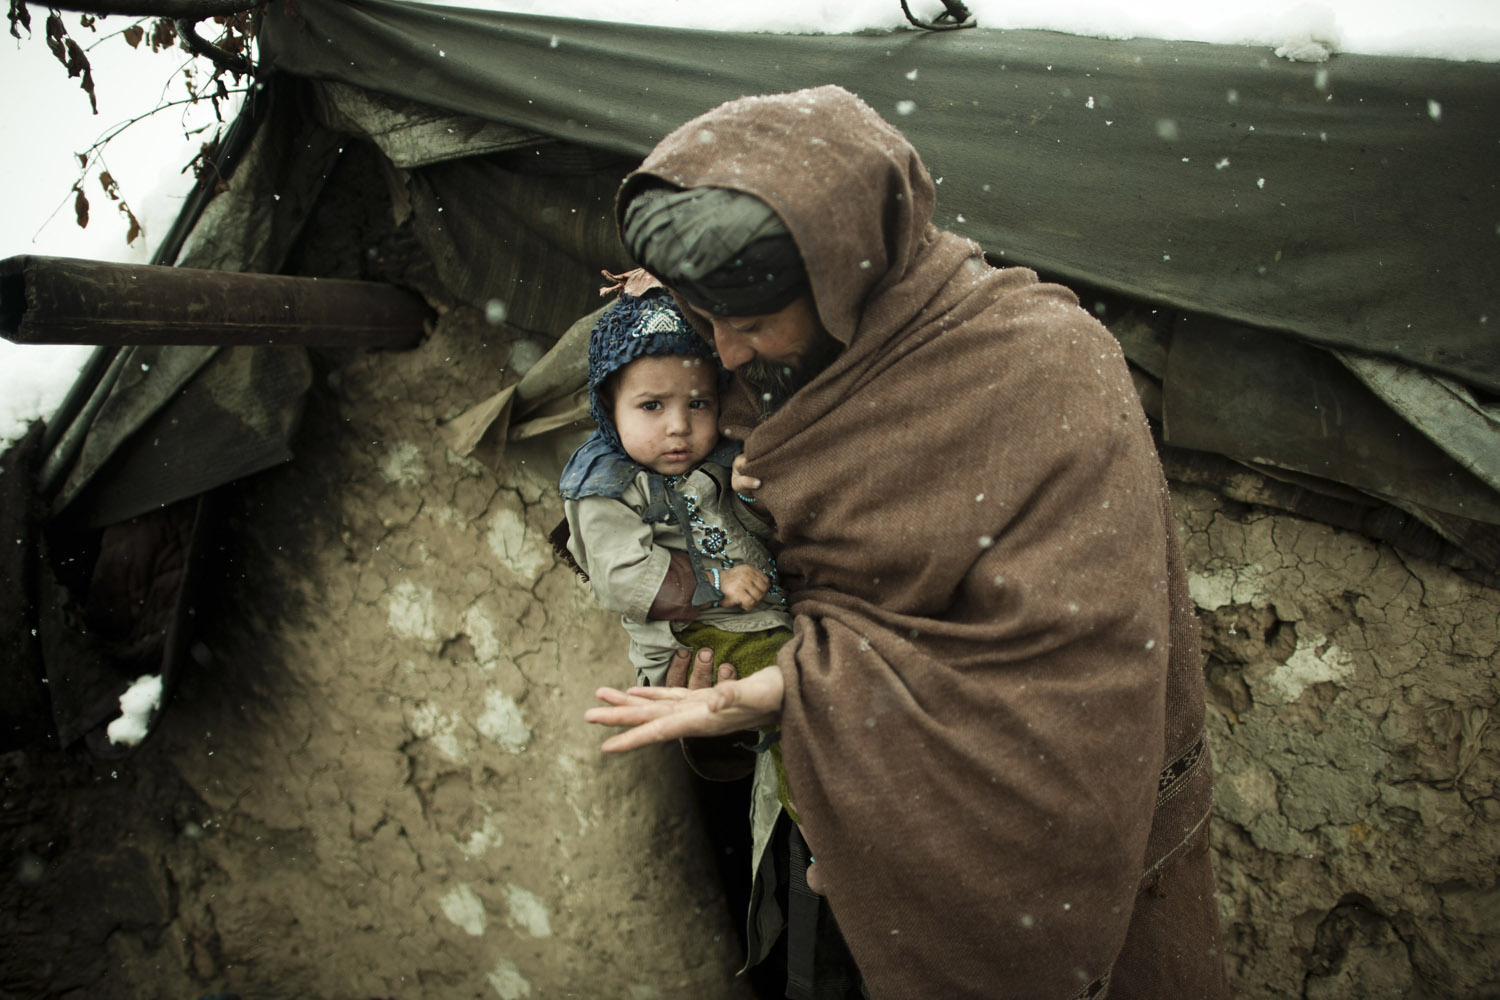 Ibrahim holds his youngest son outside a mud hut where he lives with his wife and 11 children. The same camp buried at least two children who died due to the freezing temperatures in late January, 2012.